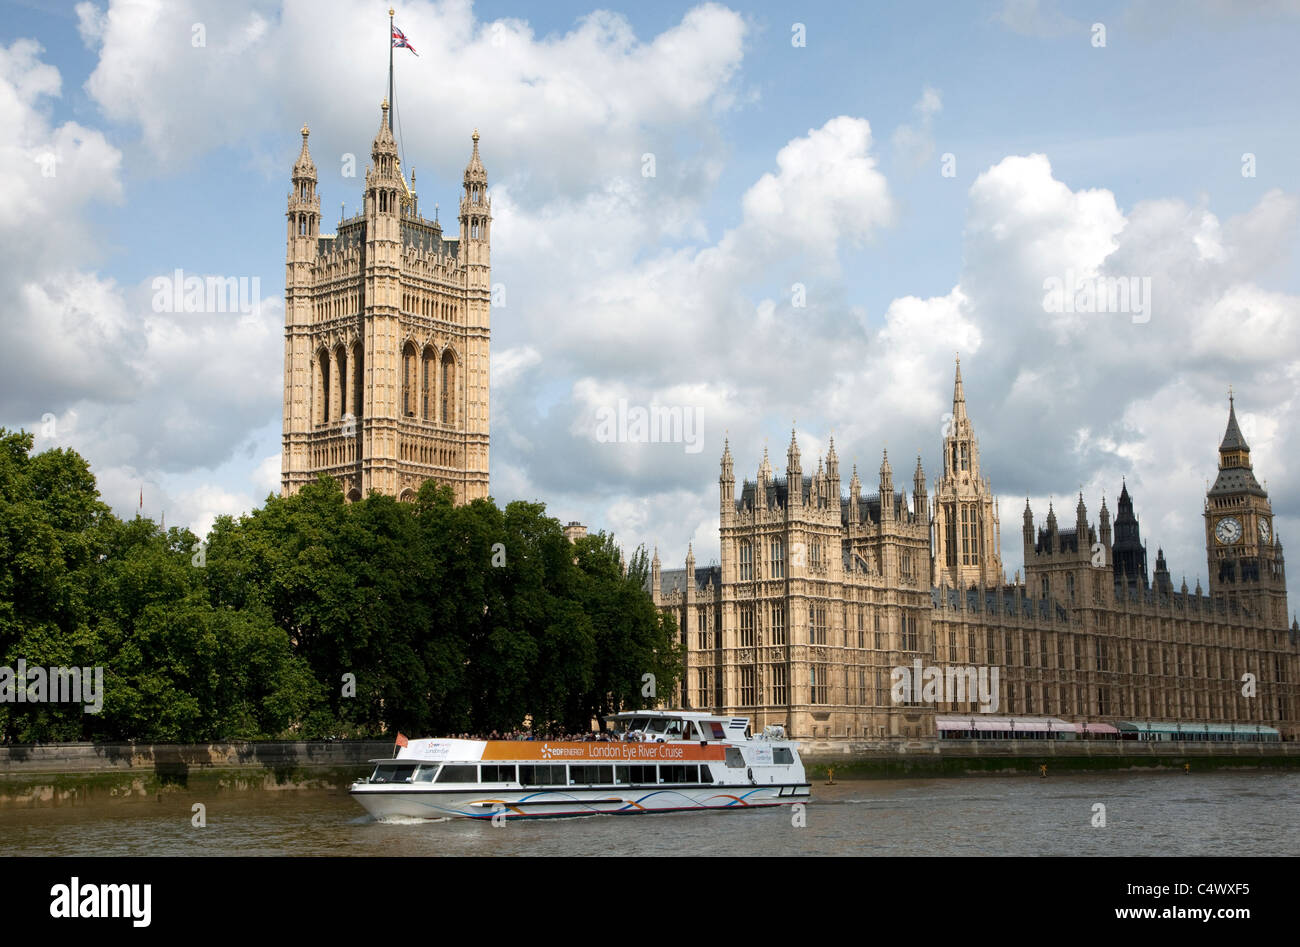 River Thames cruise boat passes Houses of Parliament, London - Stock Image